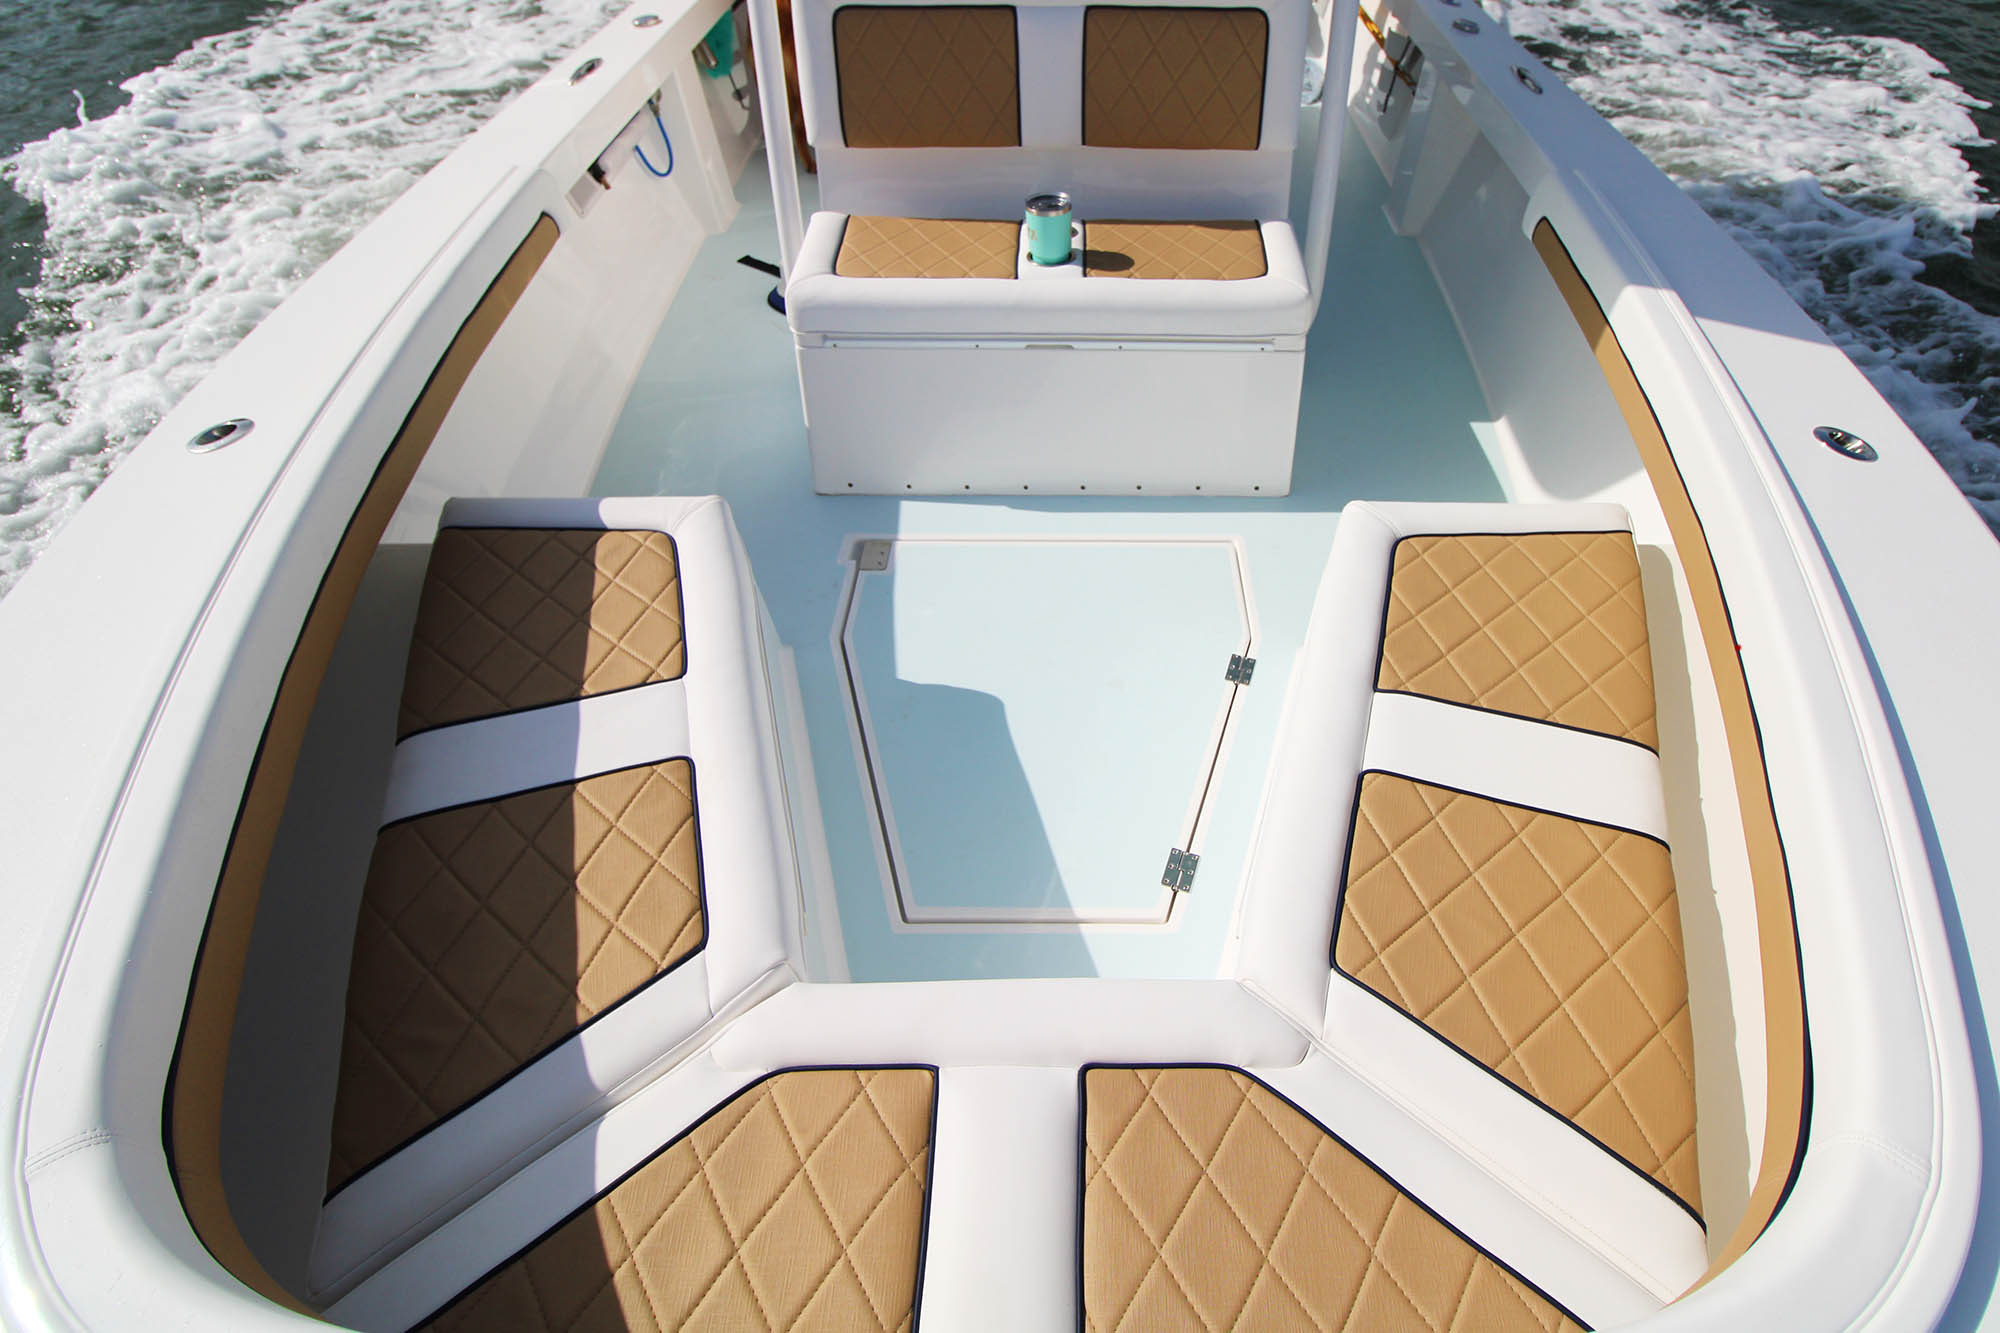 Boat seating upholstered with Sunbrella Horizon synthetic leather fabric